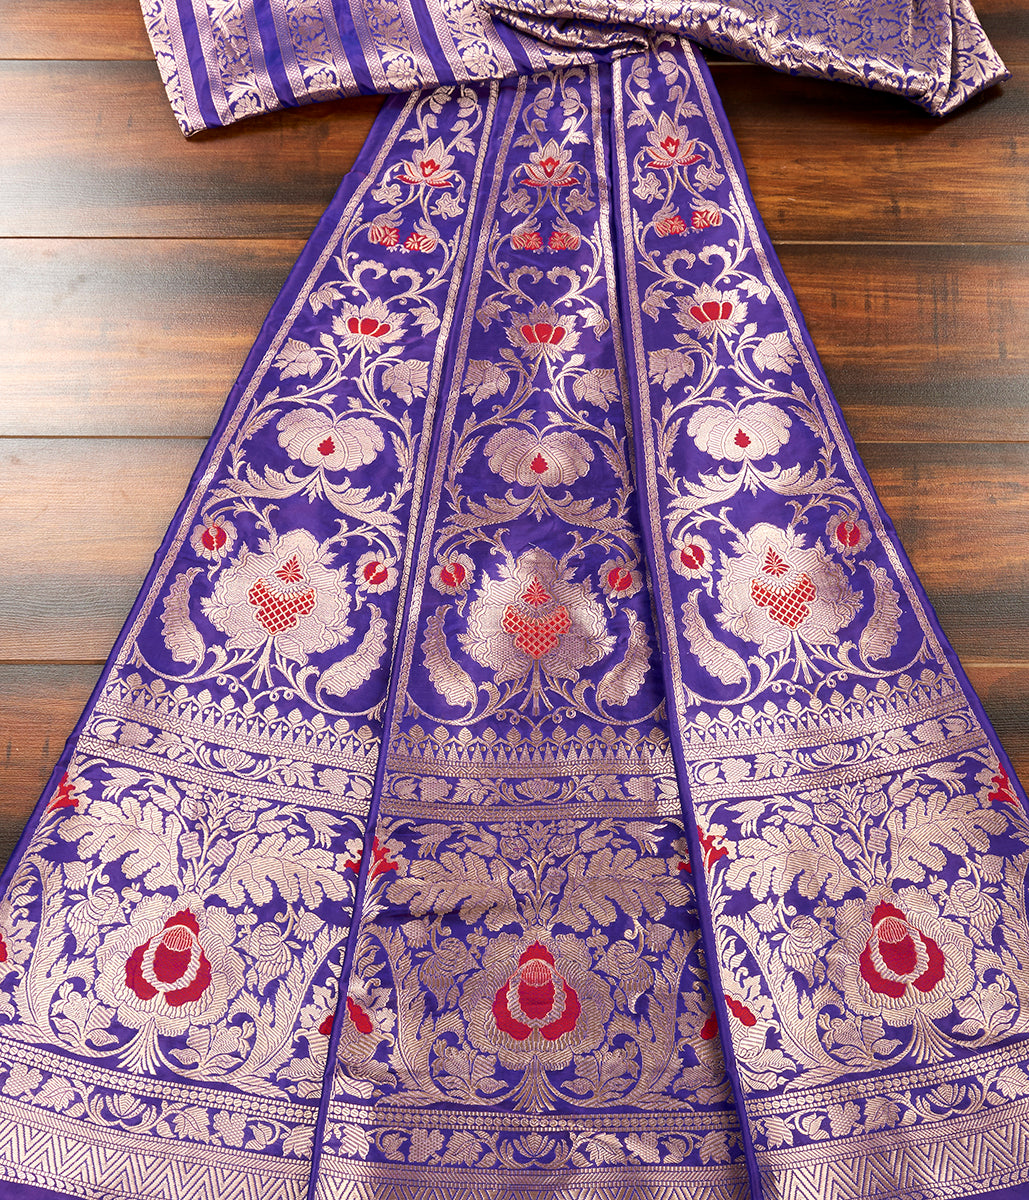 Handwoven Banarasi Silk Lehenga in Purple Color with Red Meenakari